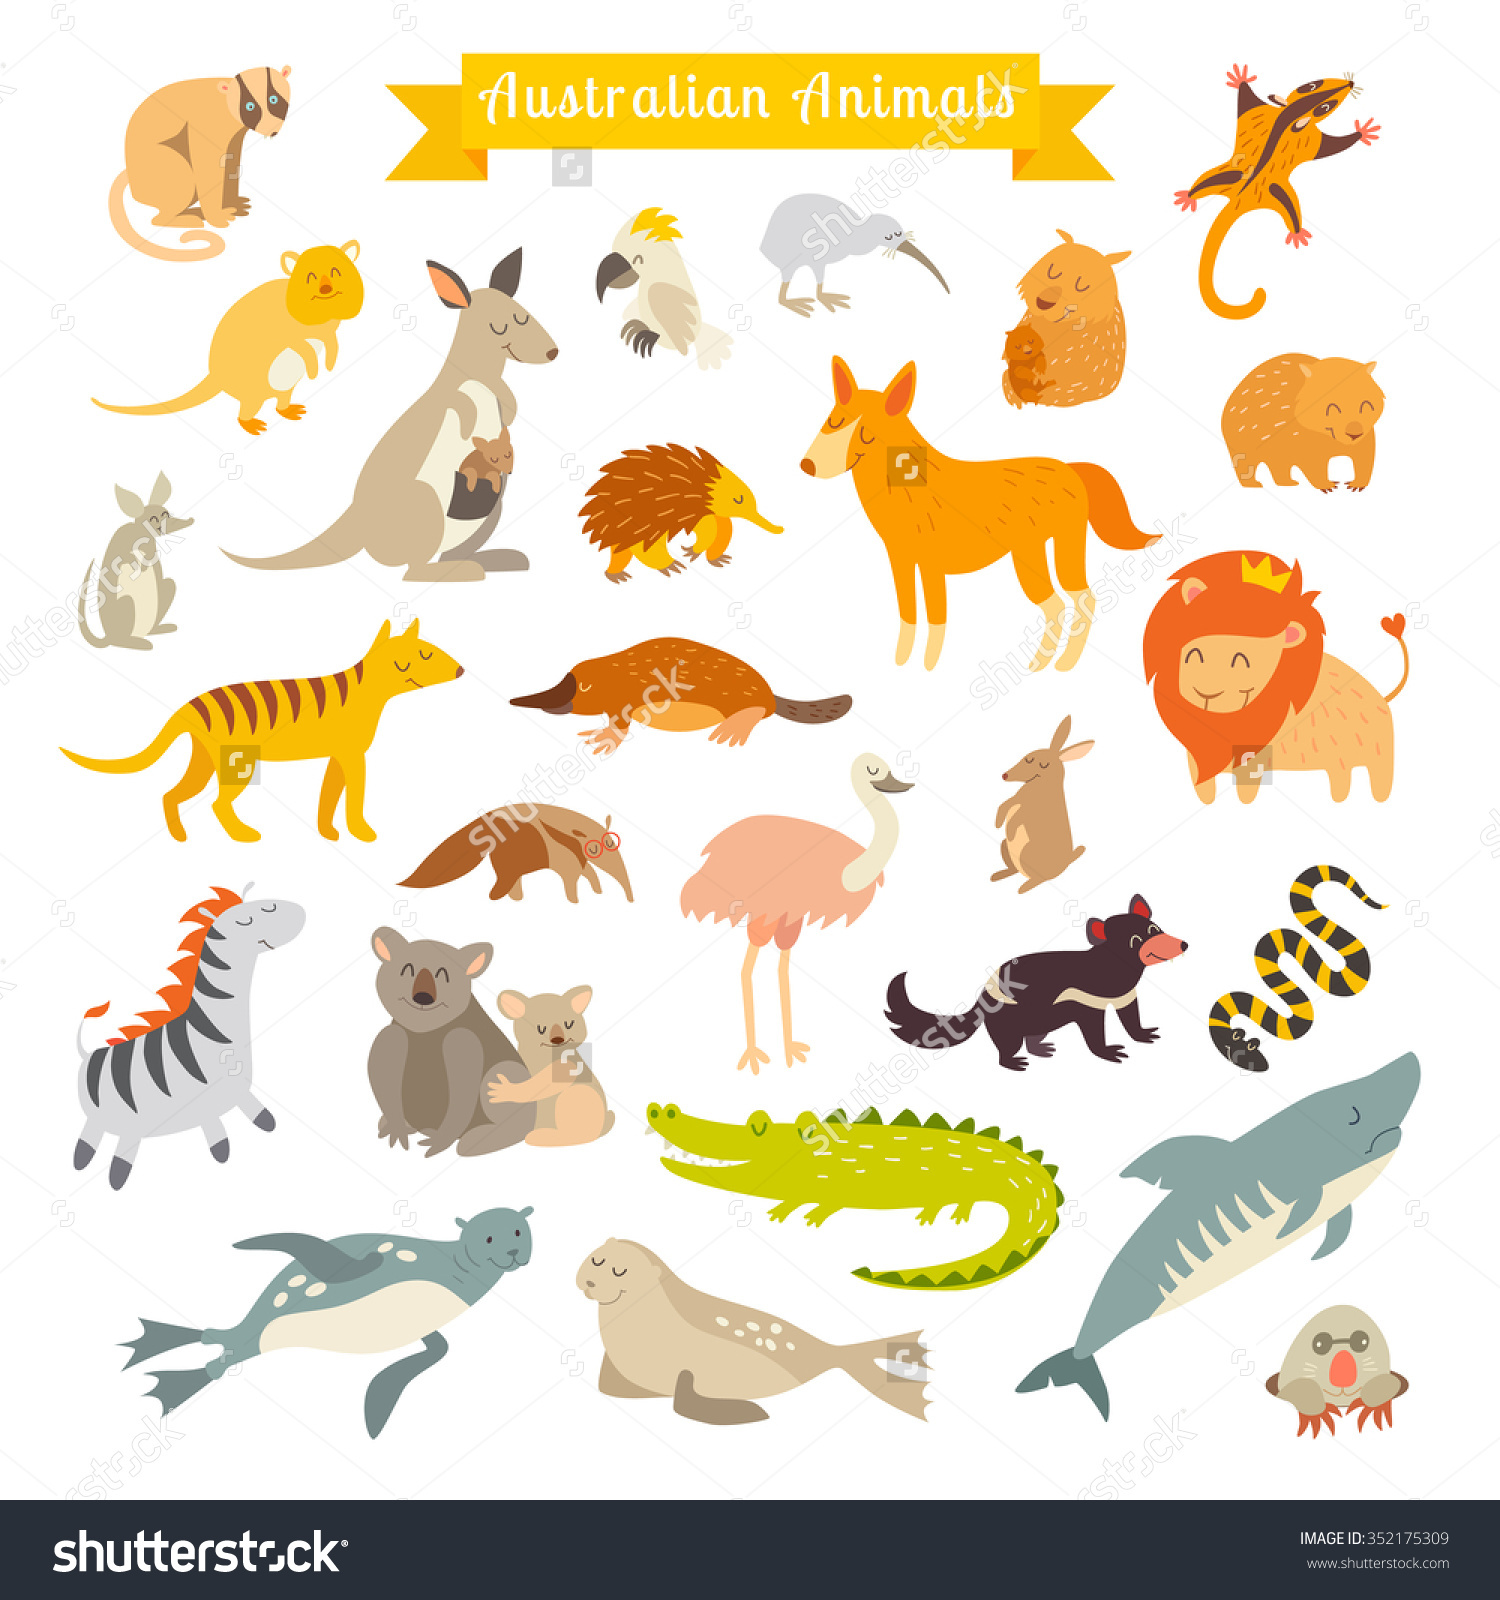 18 Preschool Animal Clipart